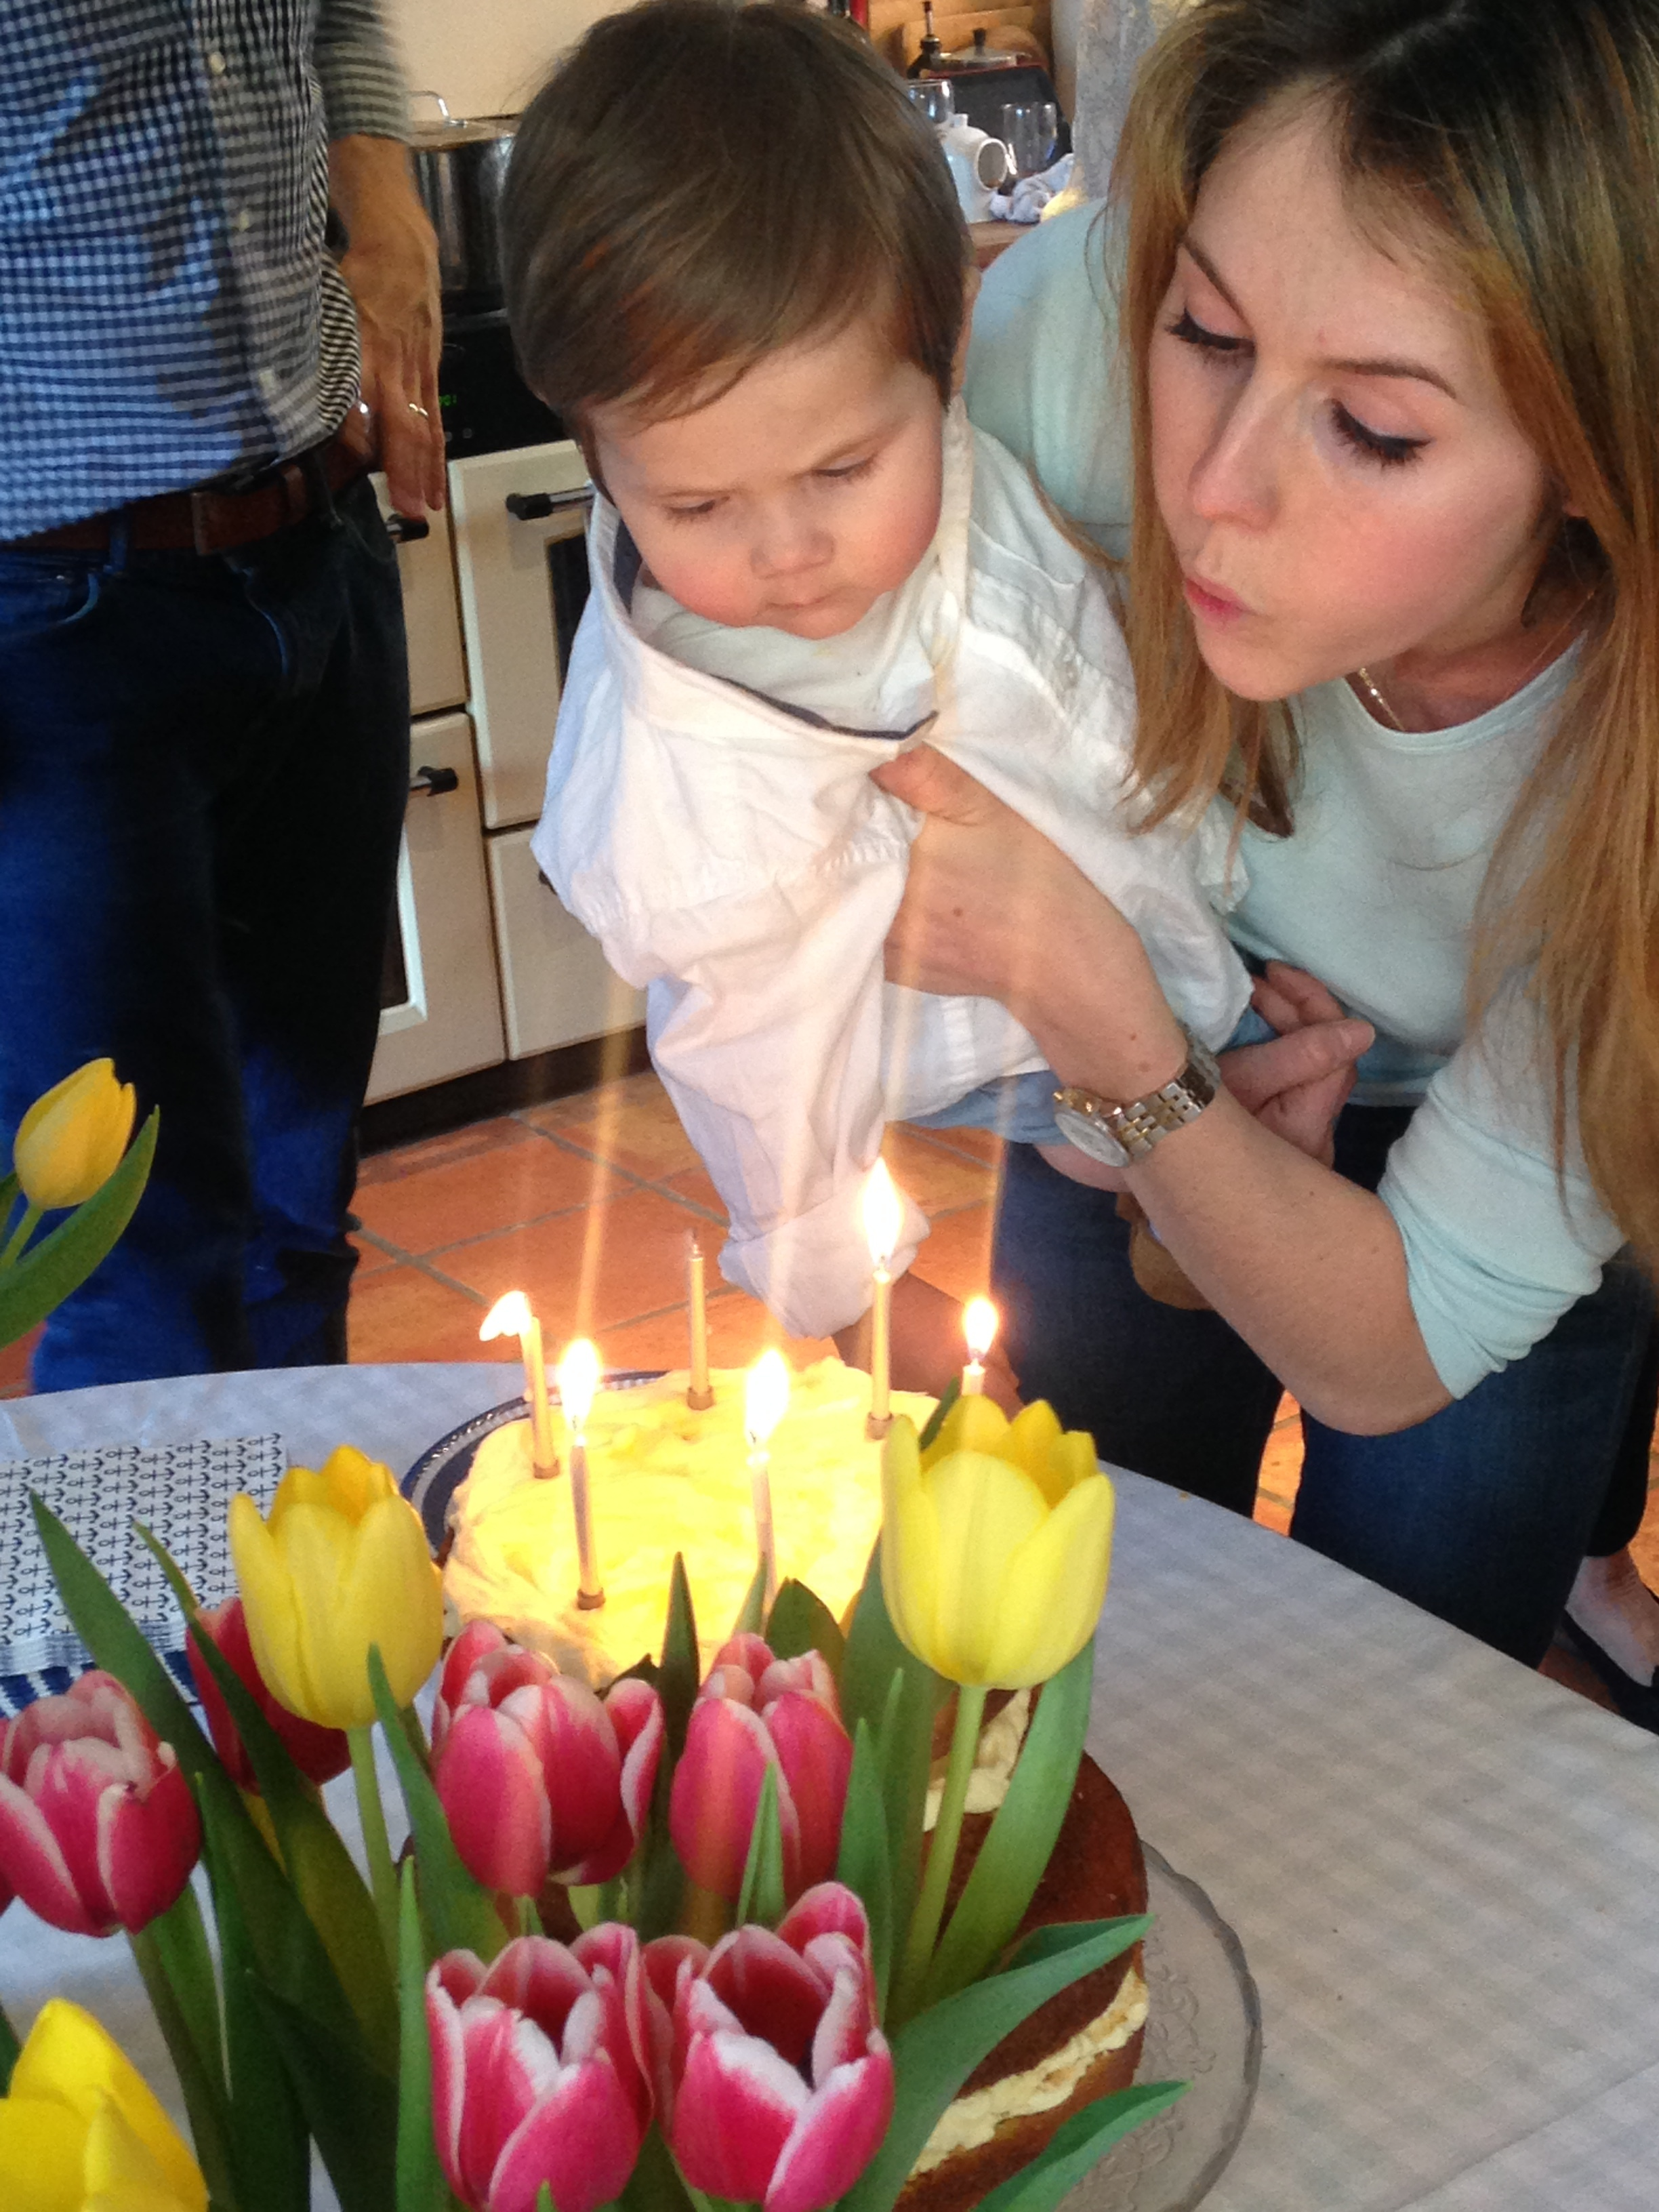 The main man having a bit of help with his birthday candles. Happy birthday G!